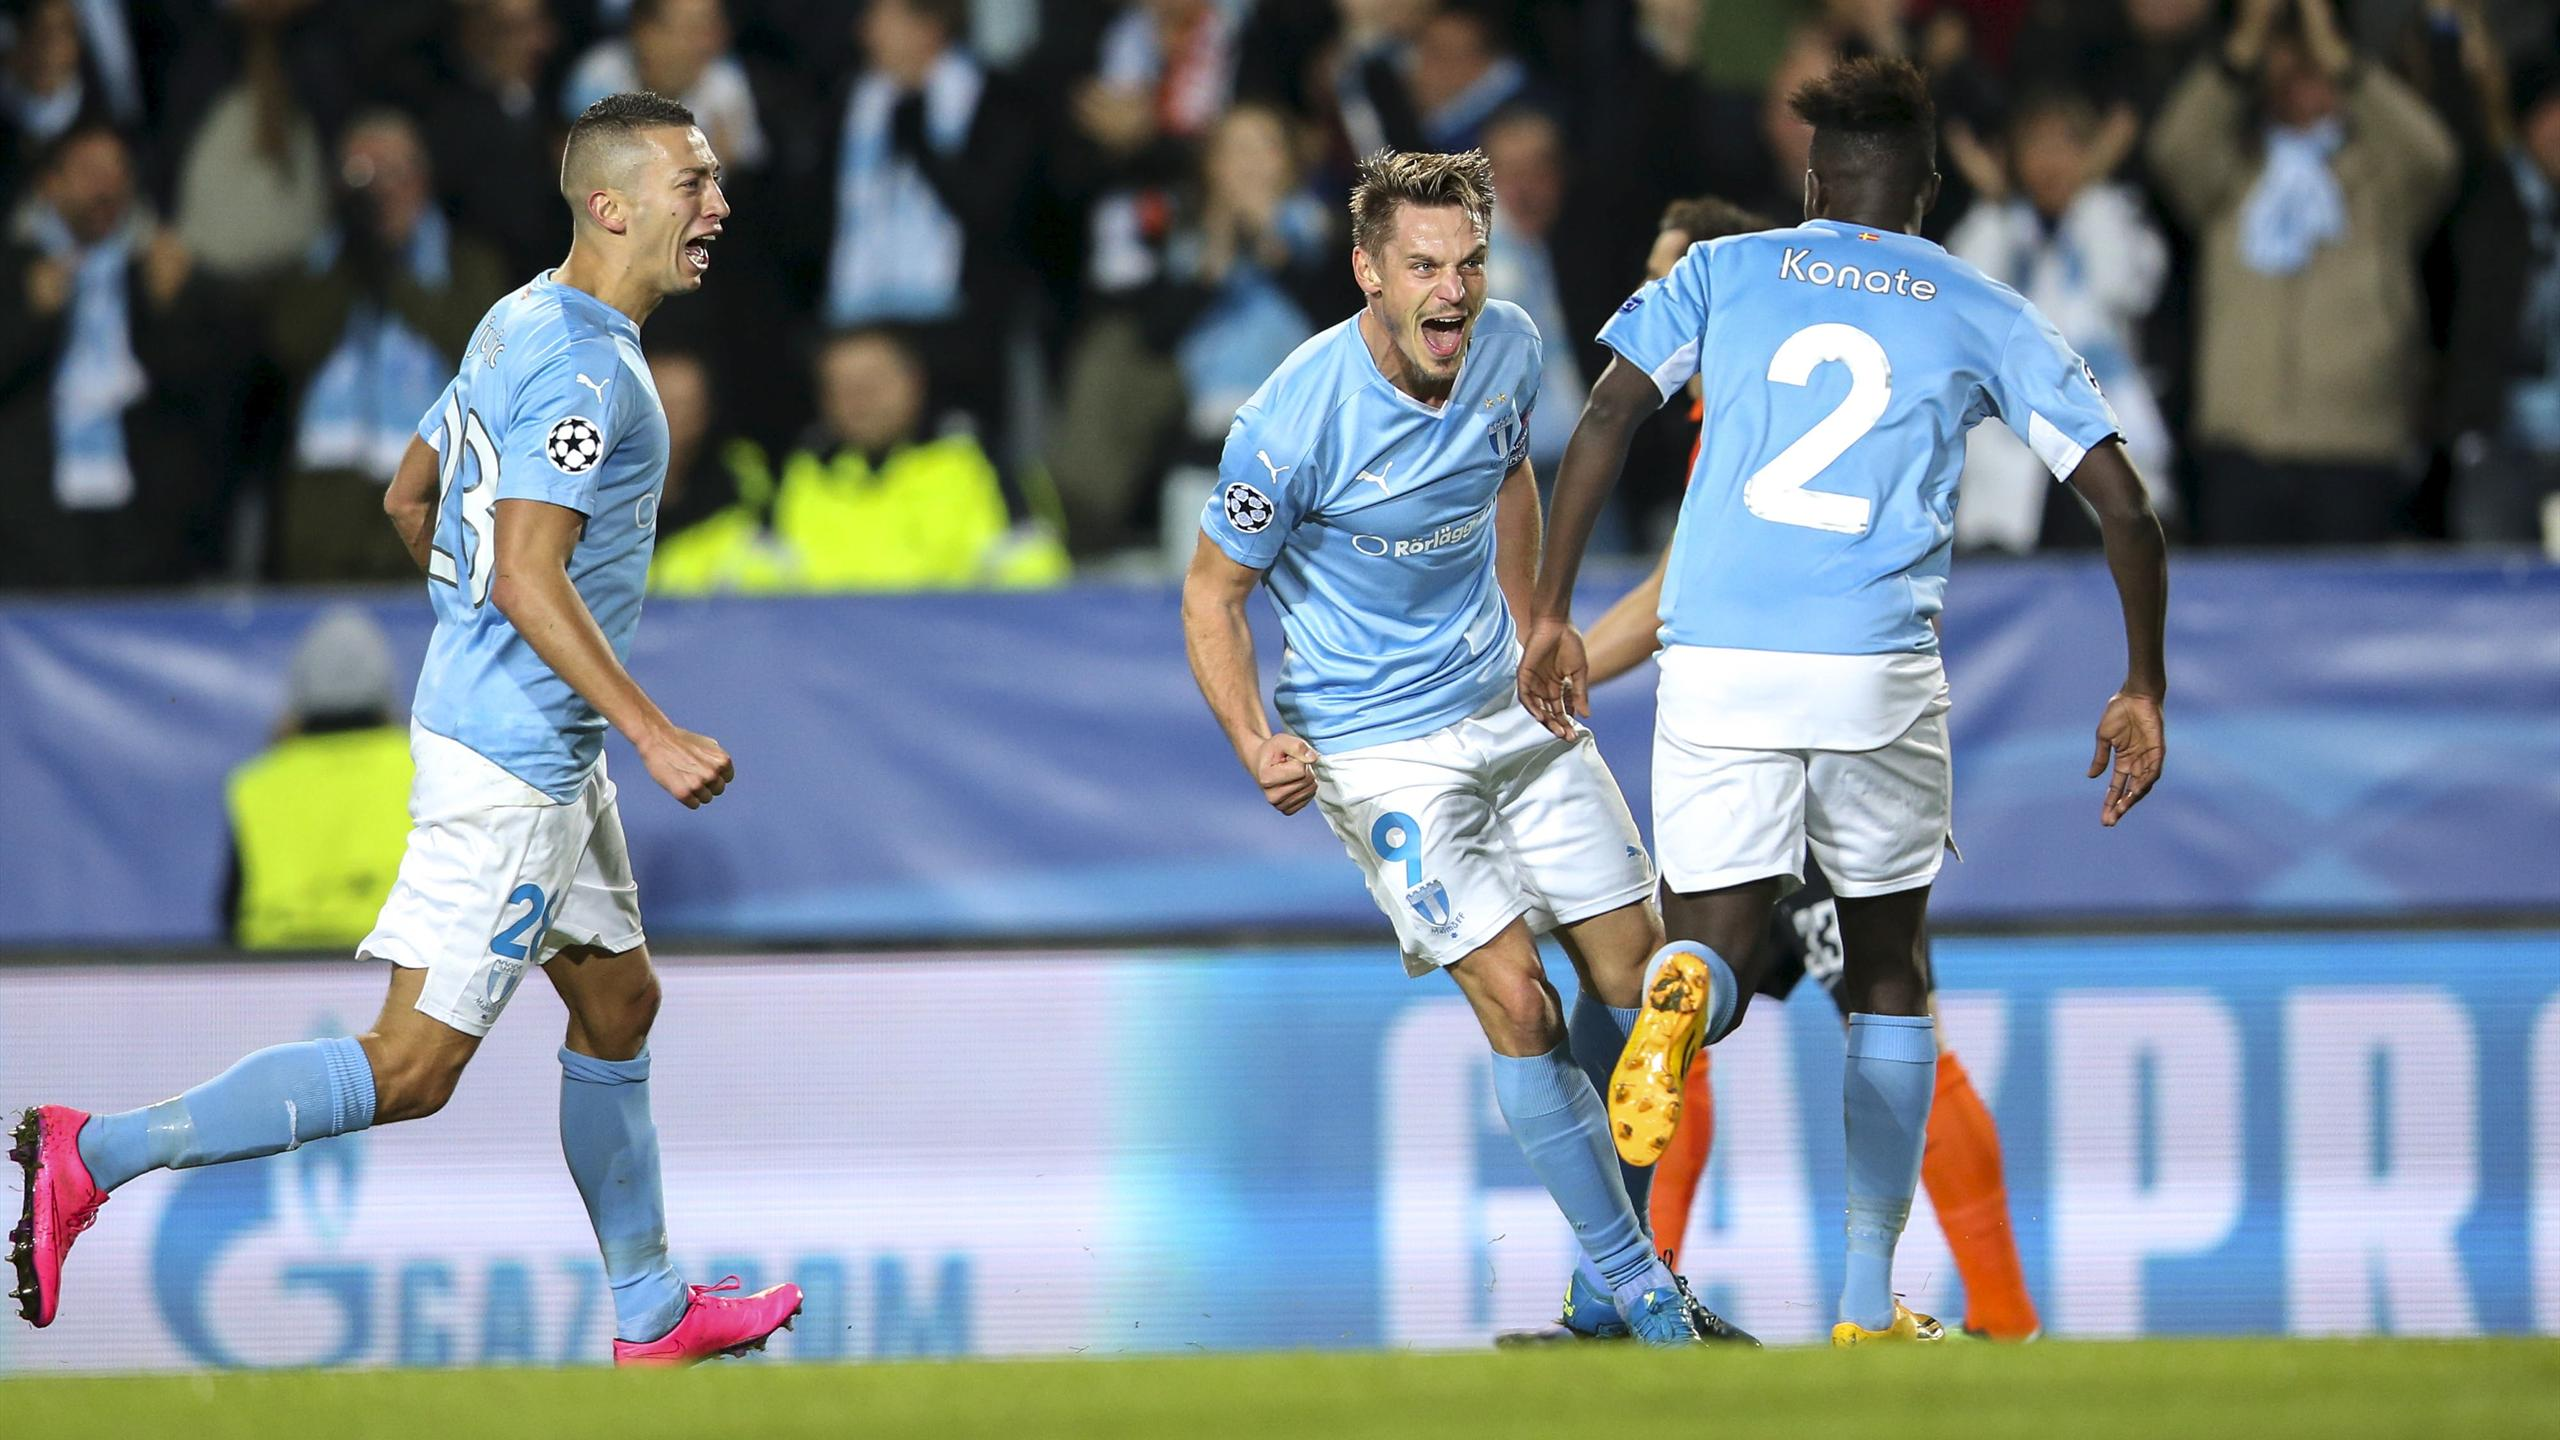 Malmo's Markus Rosenberg (C) celebrates with his teammates after scoring the opening goal during their Champions League Group A soccer match against Shakhtar Donetsk